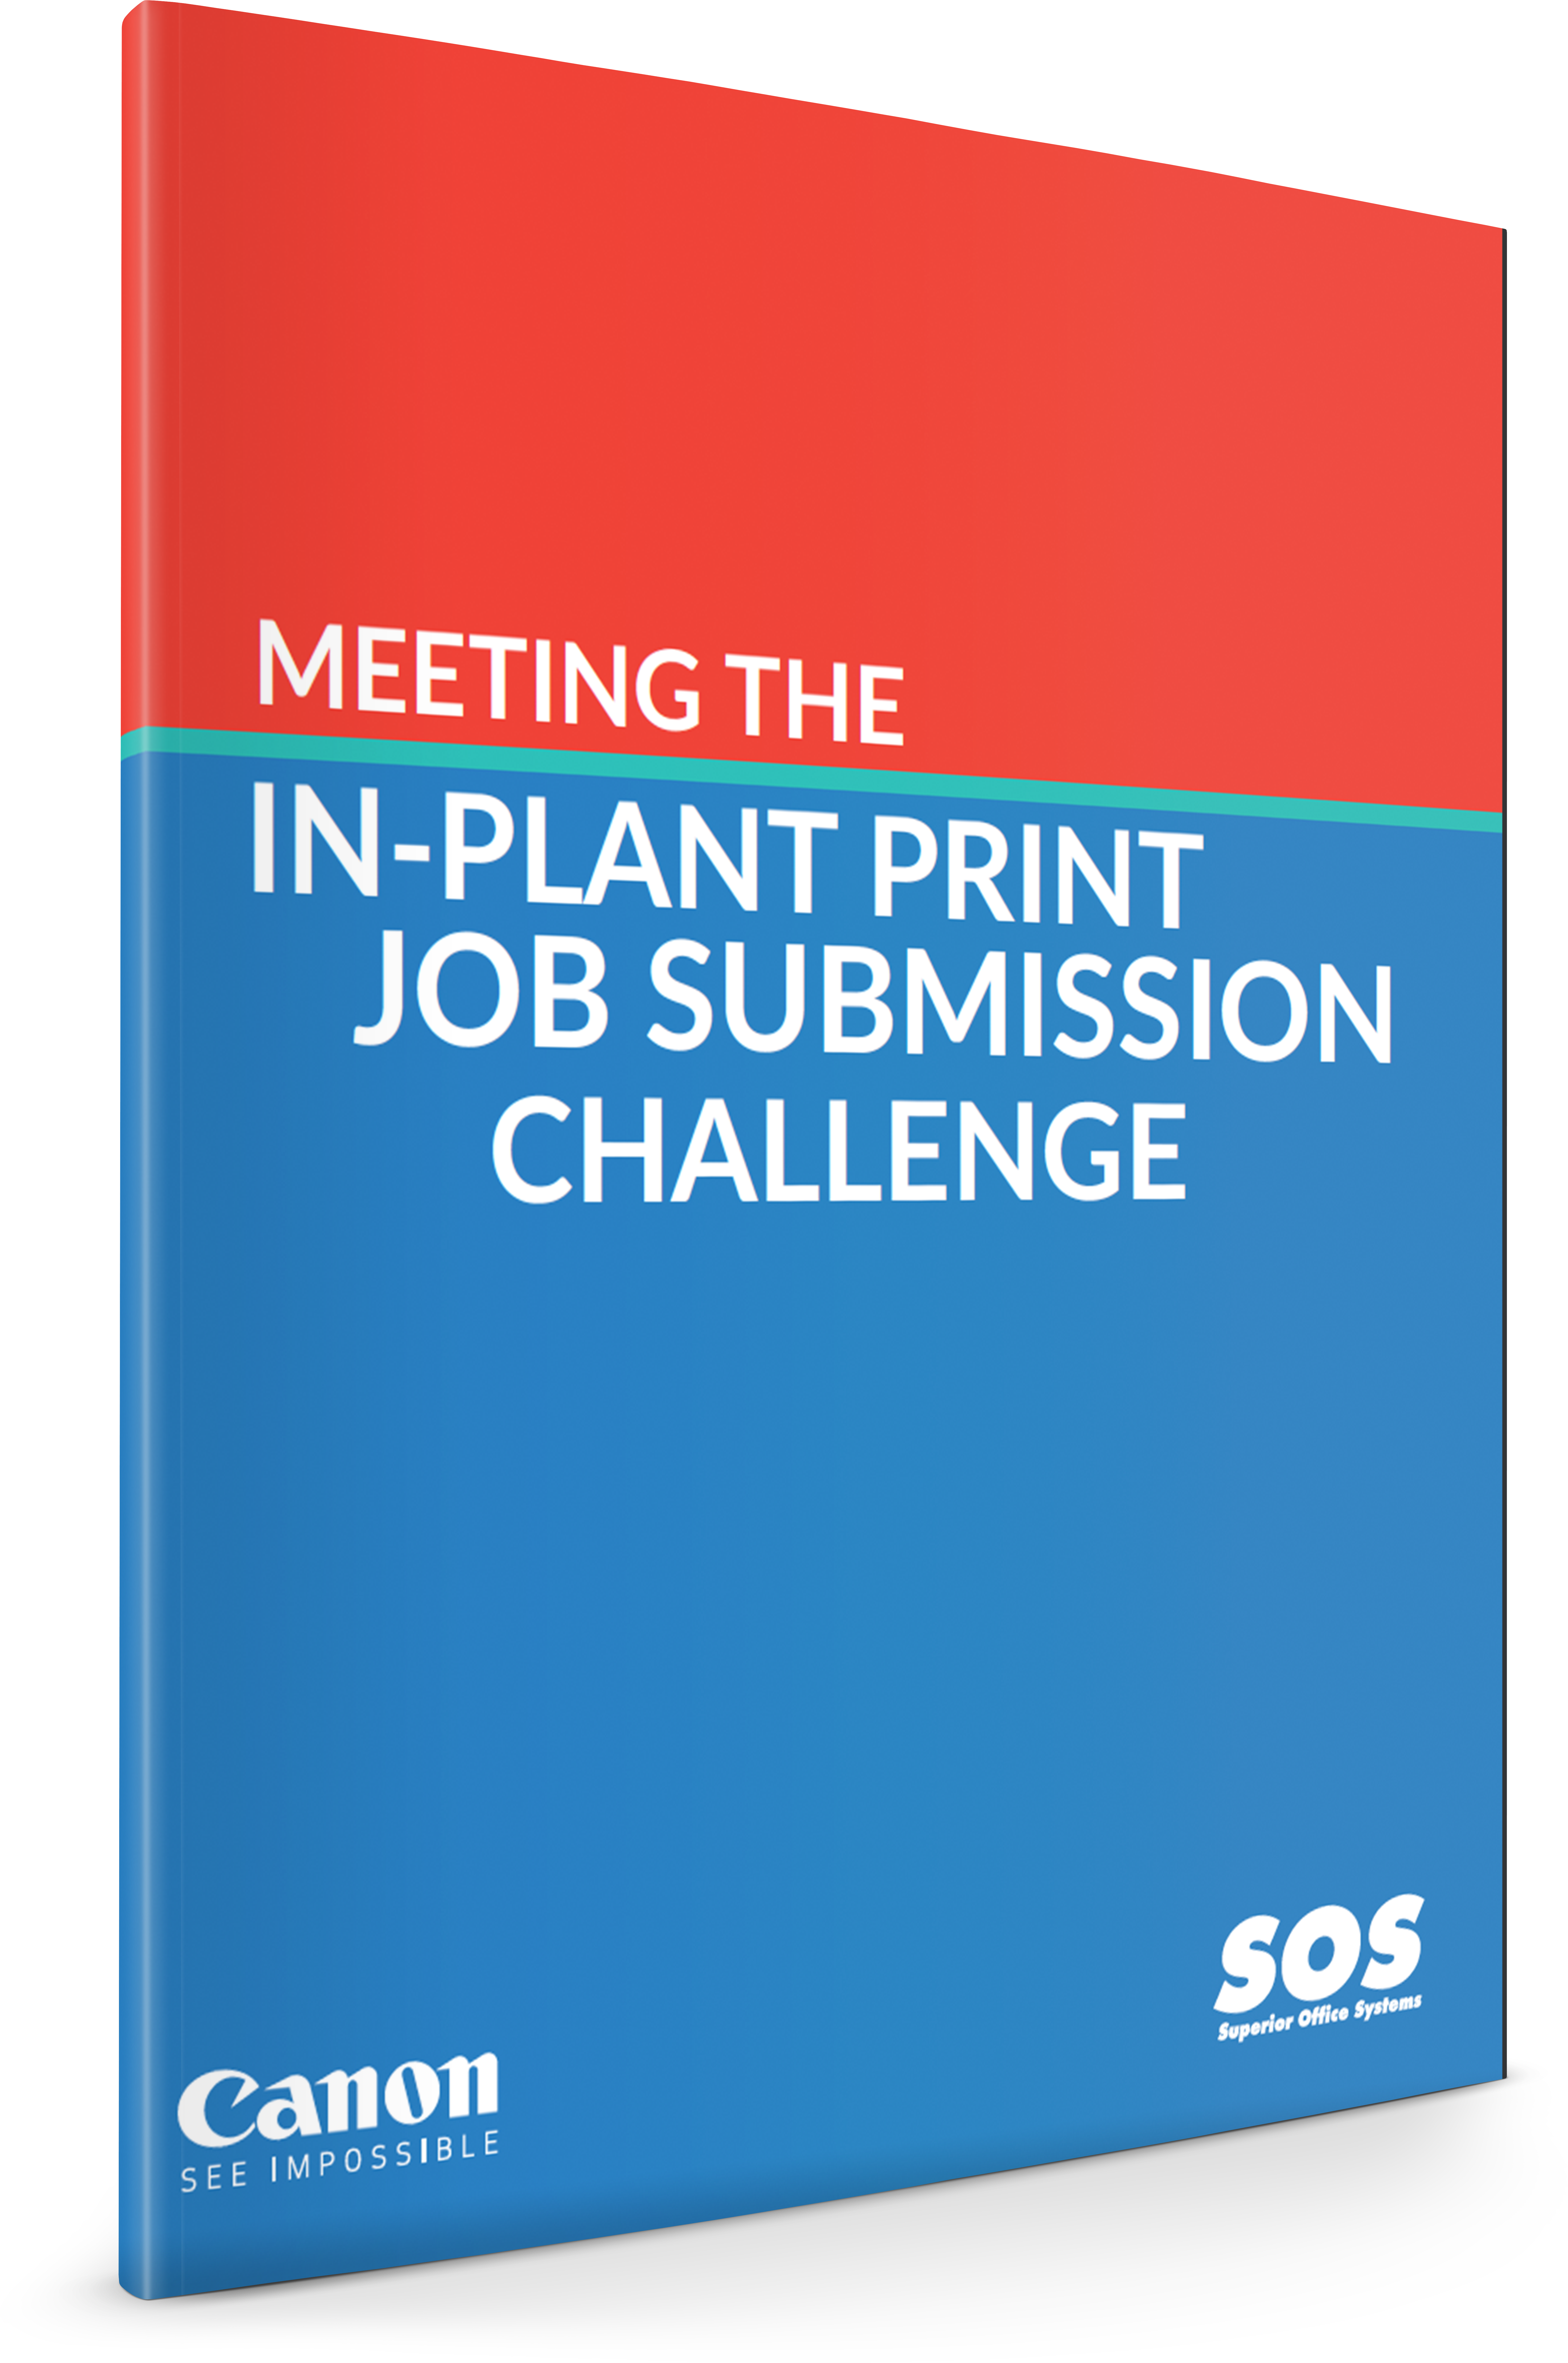 SOS_Canon Meeting the In-Plant Print Job Submission Challenge.png